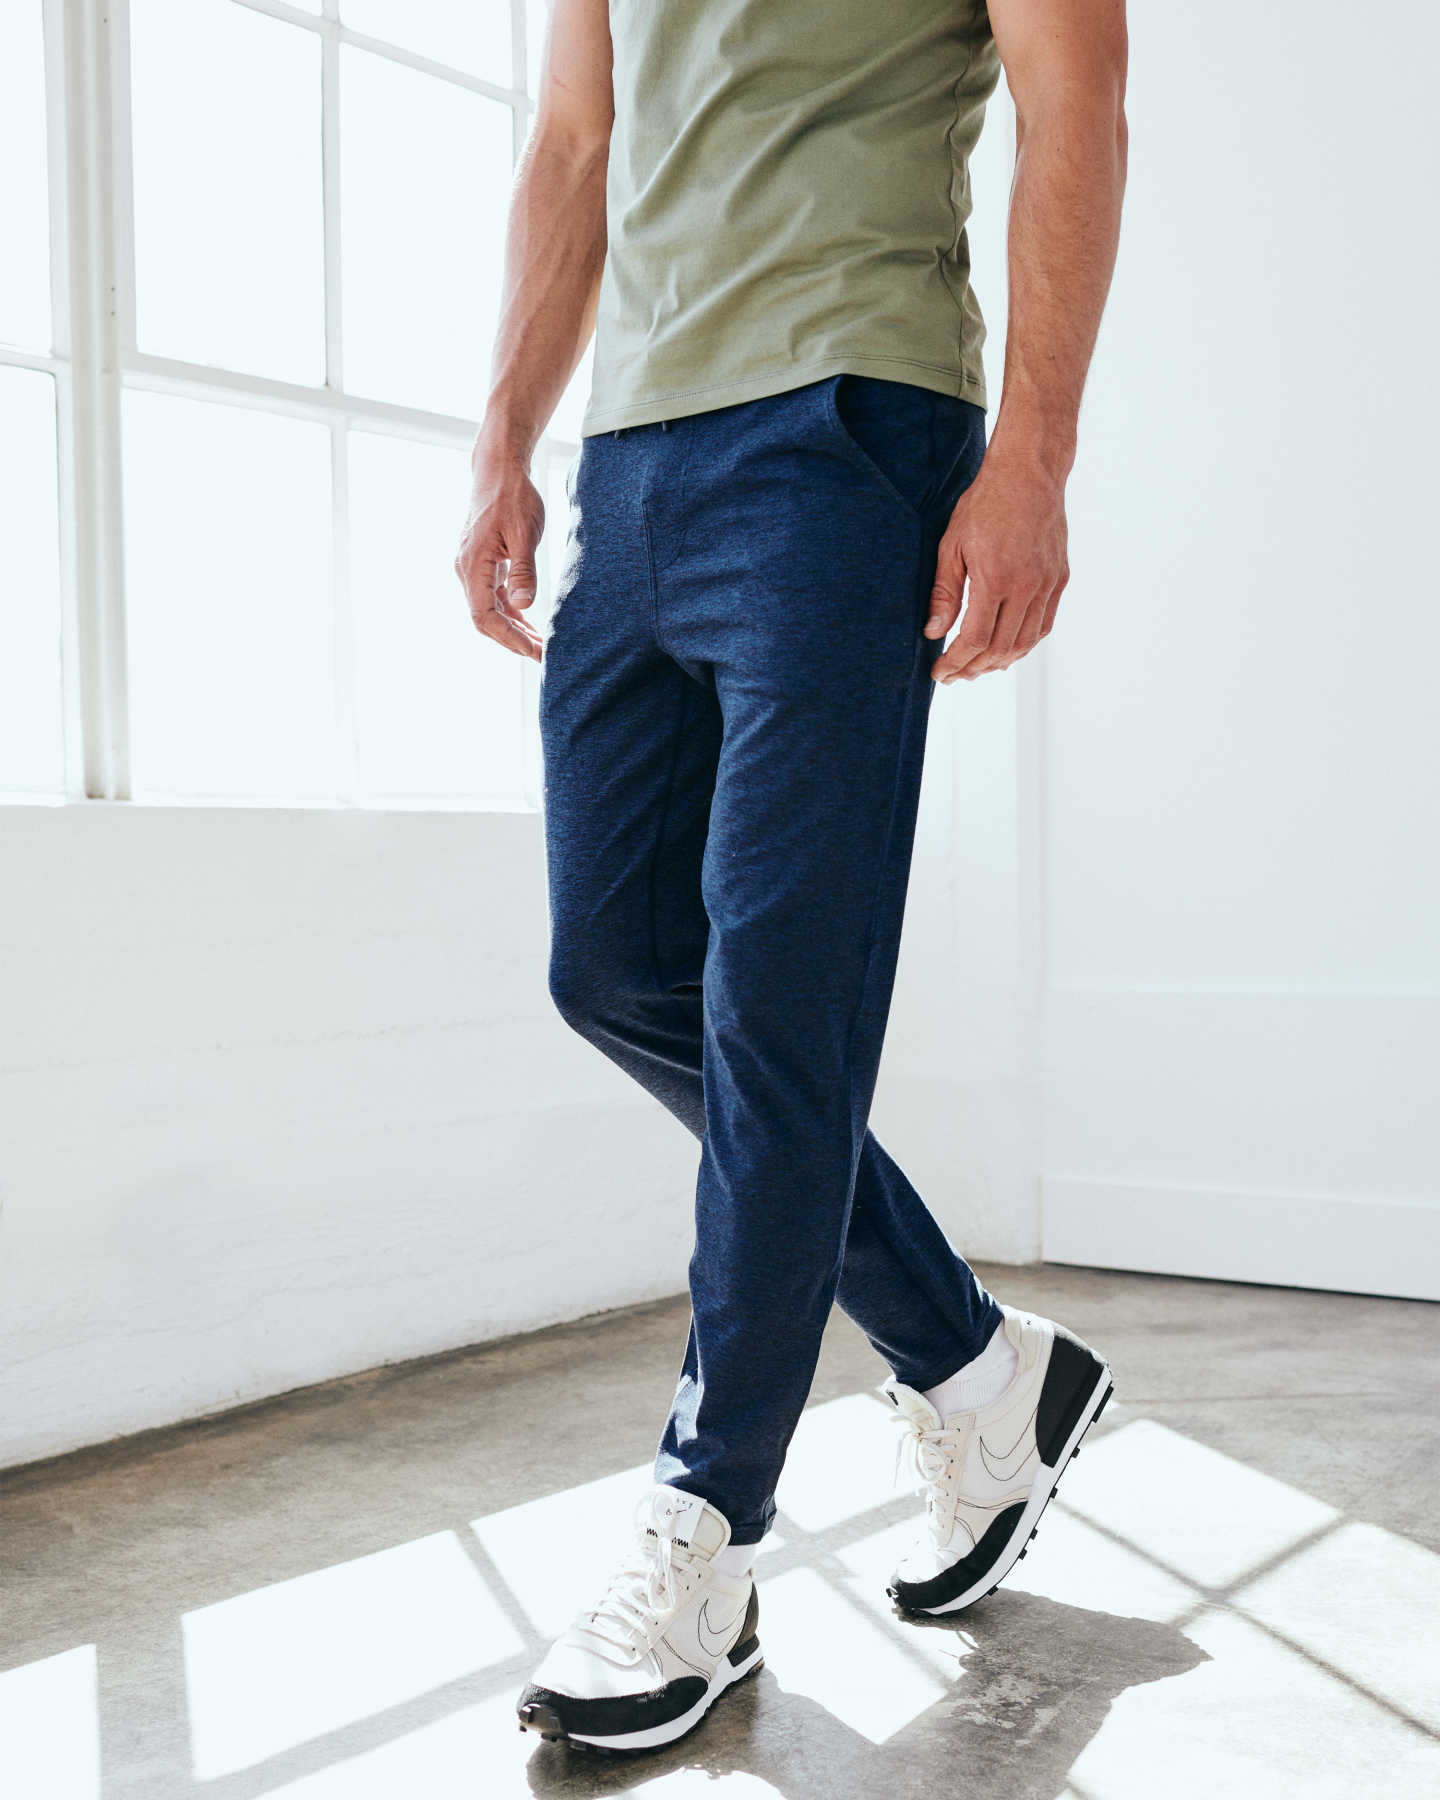 Flowknit Ultra-soft Performance Pant - Heather Navy